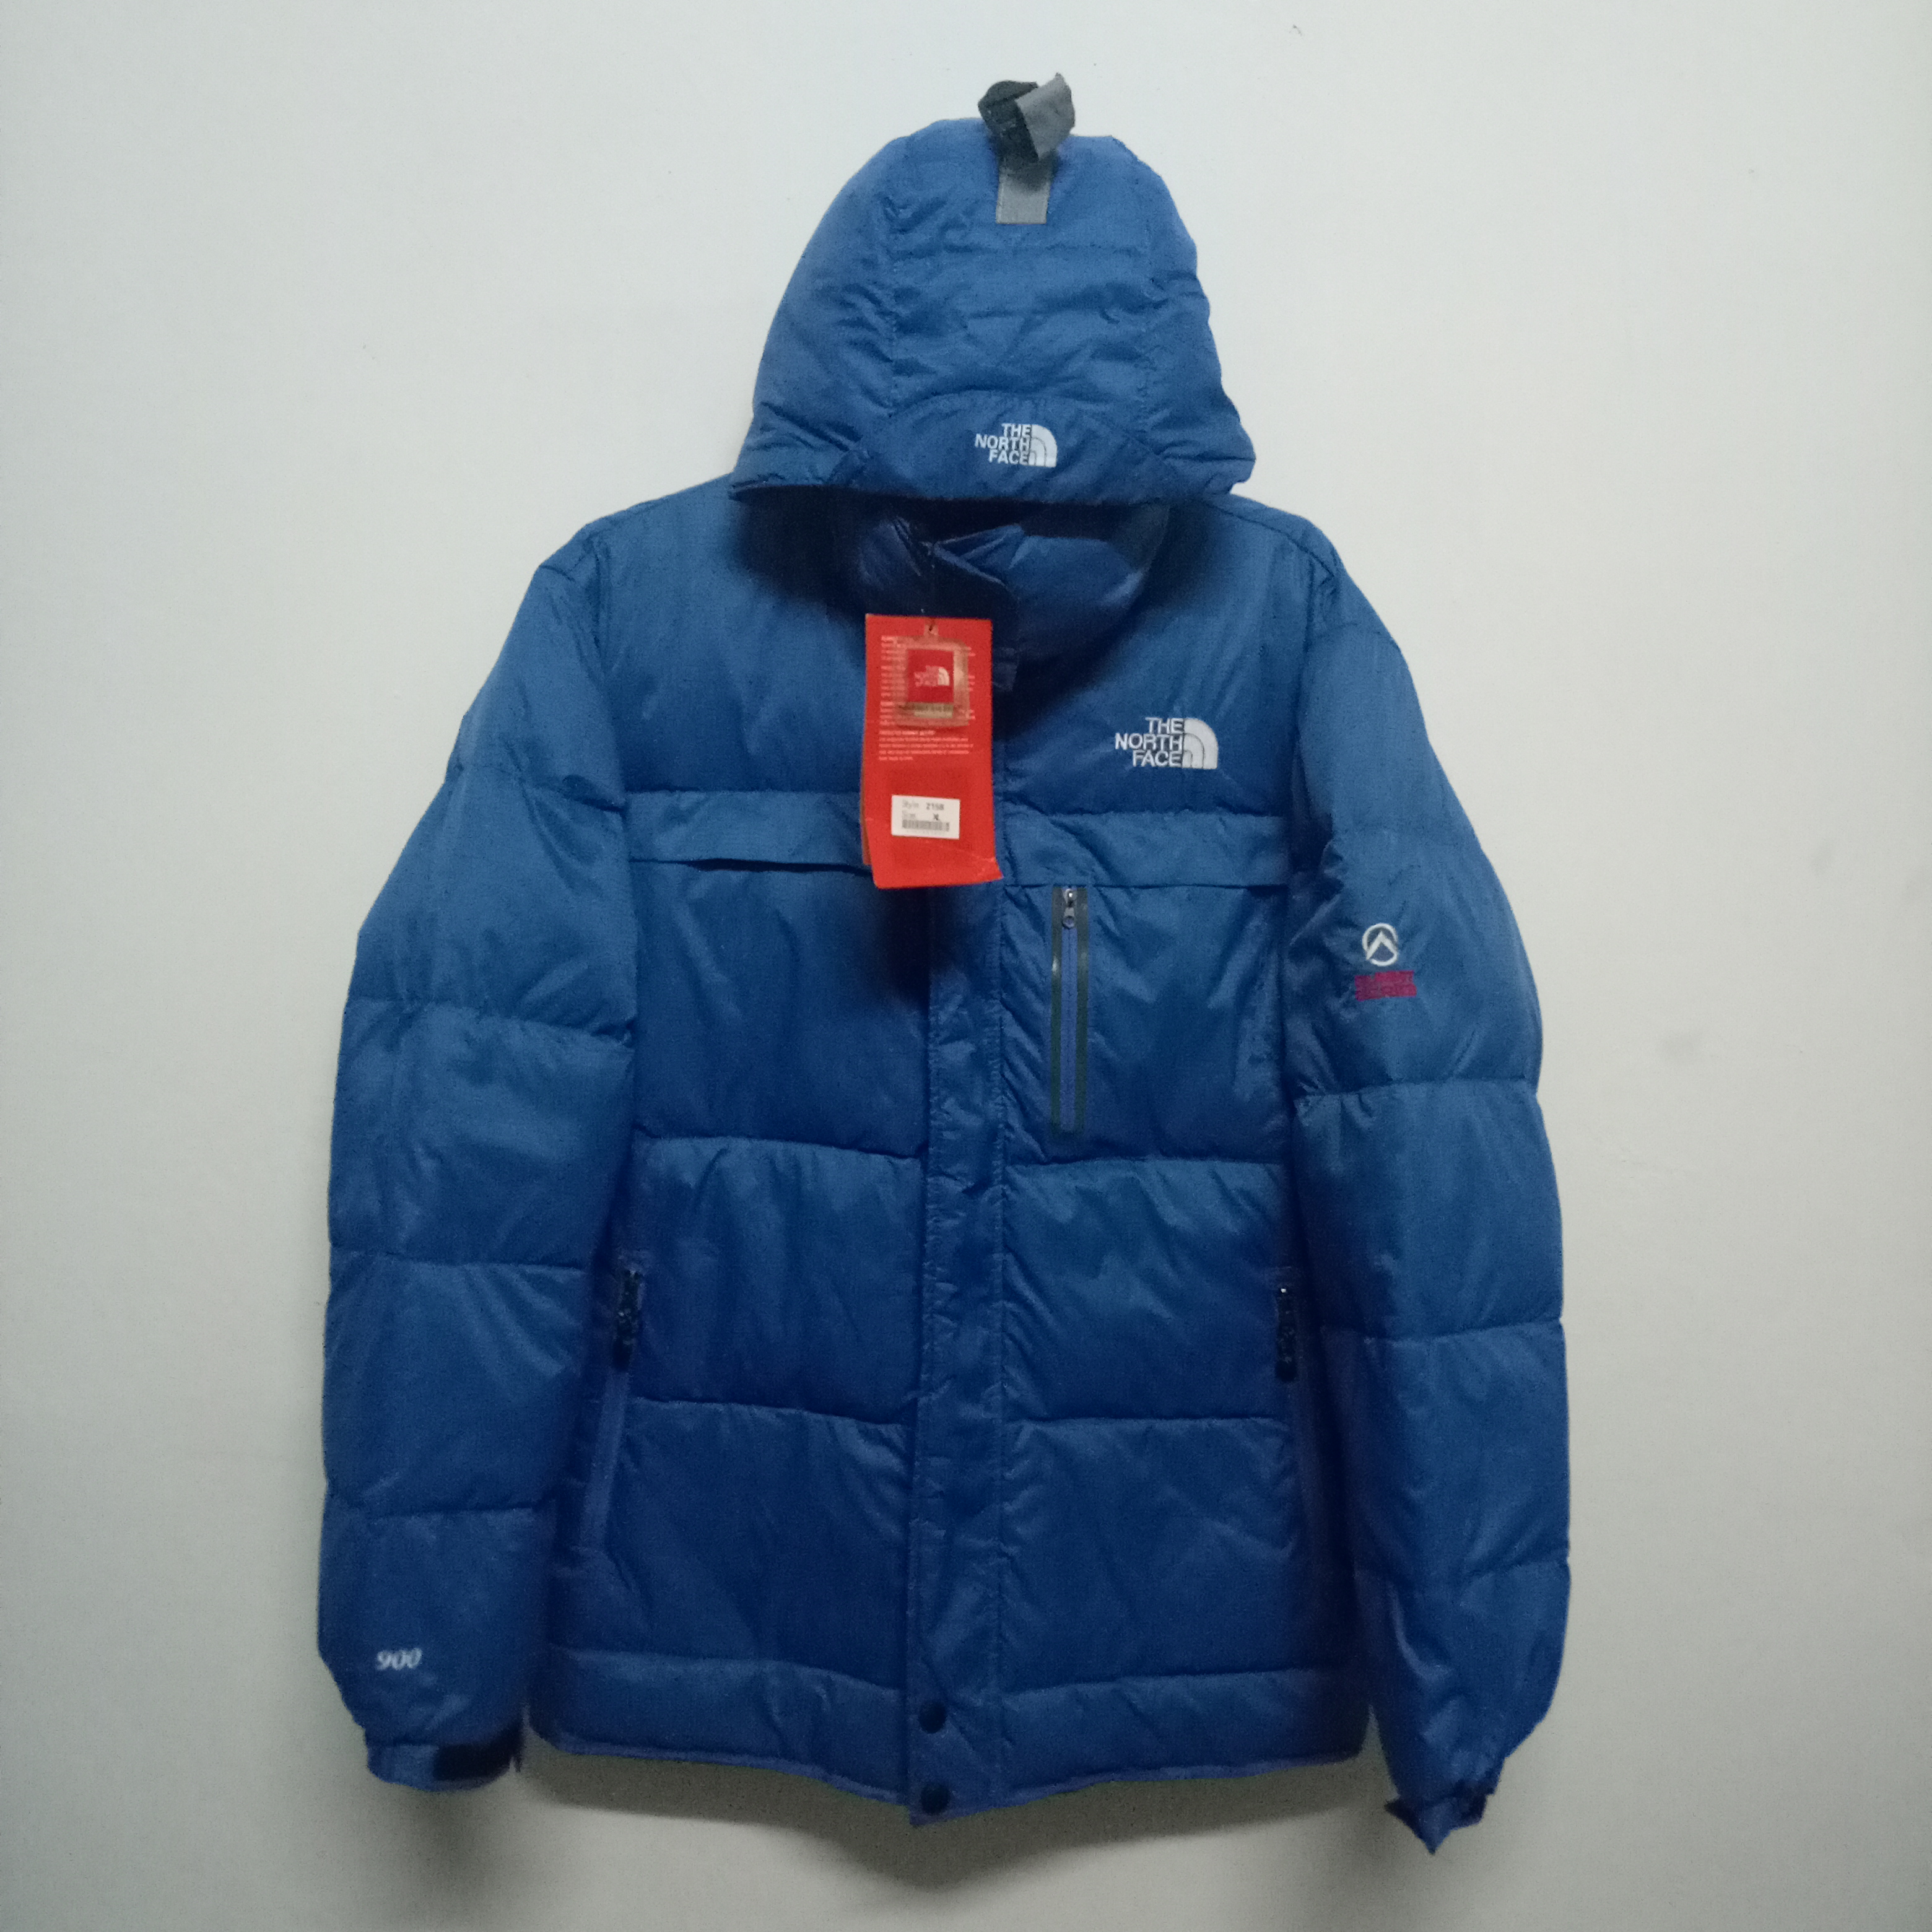 The North Face Deadstock The North Face 900 Nuptse Goose Down Puffer Jacket  Size xl - Light Jackets for Sale - Grailed 45b7f468a